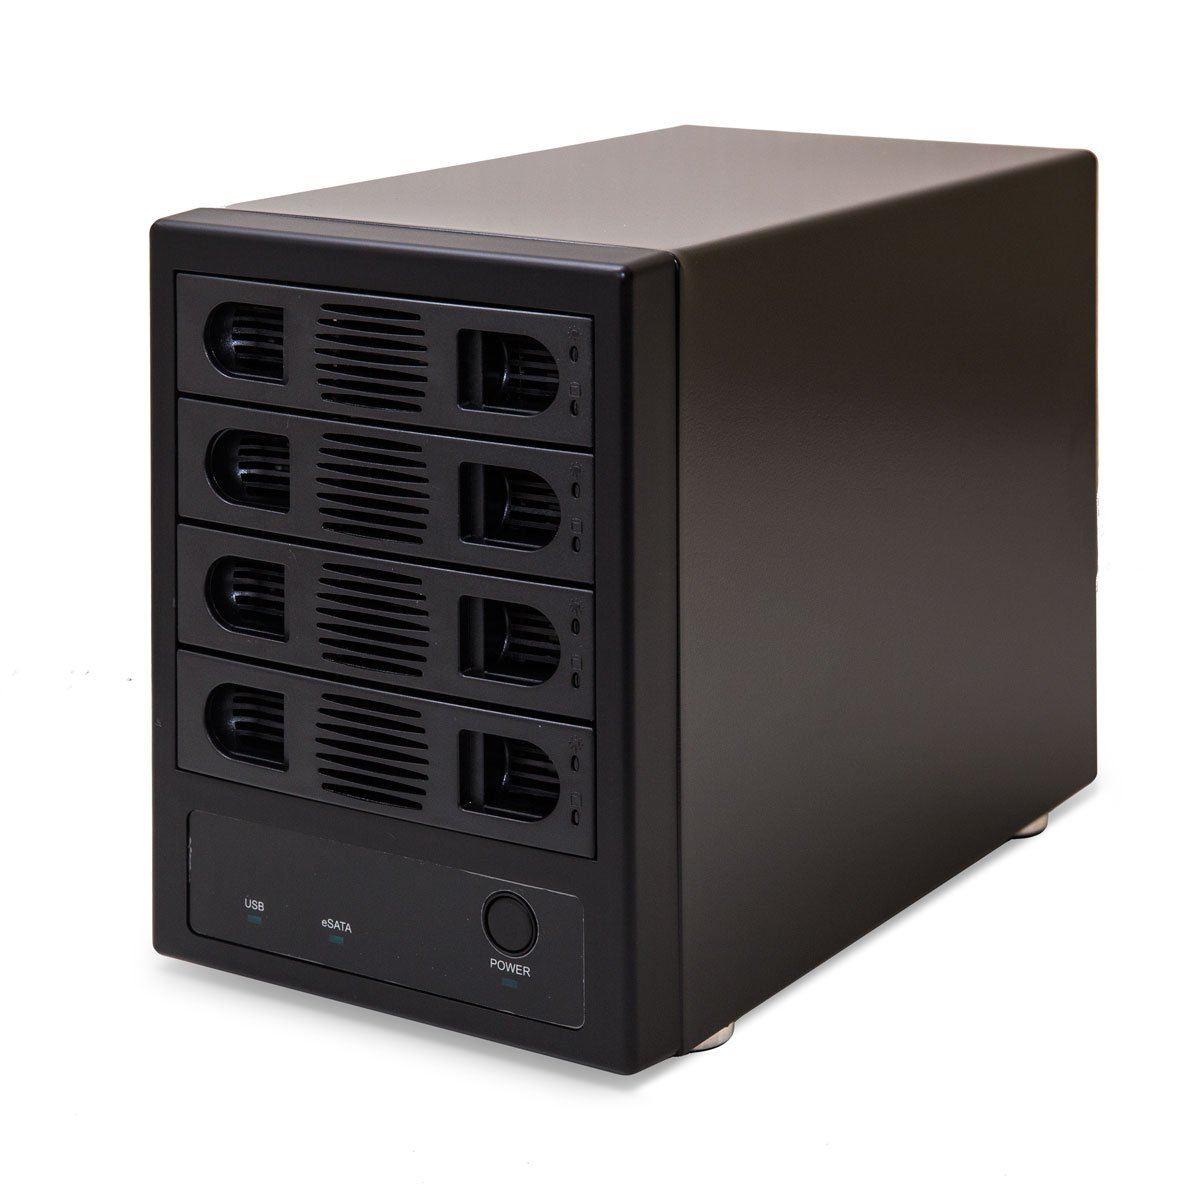 "Syba SY-ENC50104 4 Bay 3.5"" SATA III HDD NON-RAID Enclosure – Supports USB 3.0 & eSATA Interface"